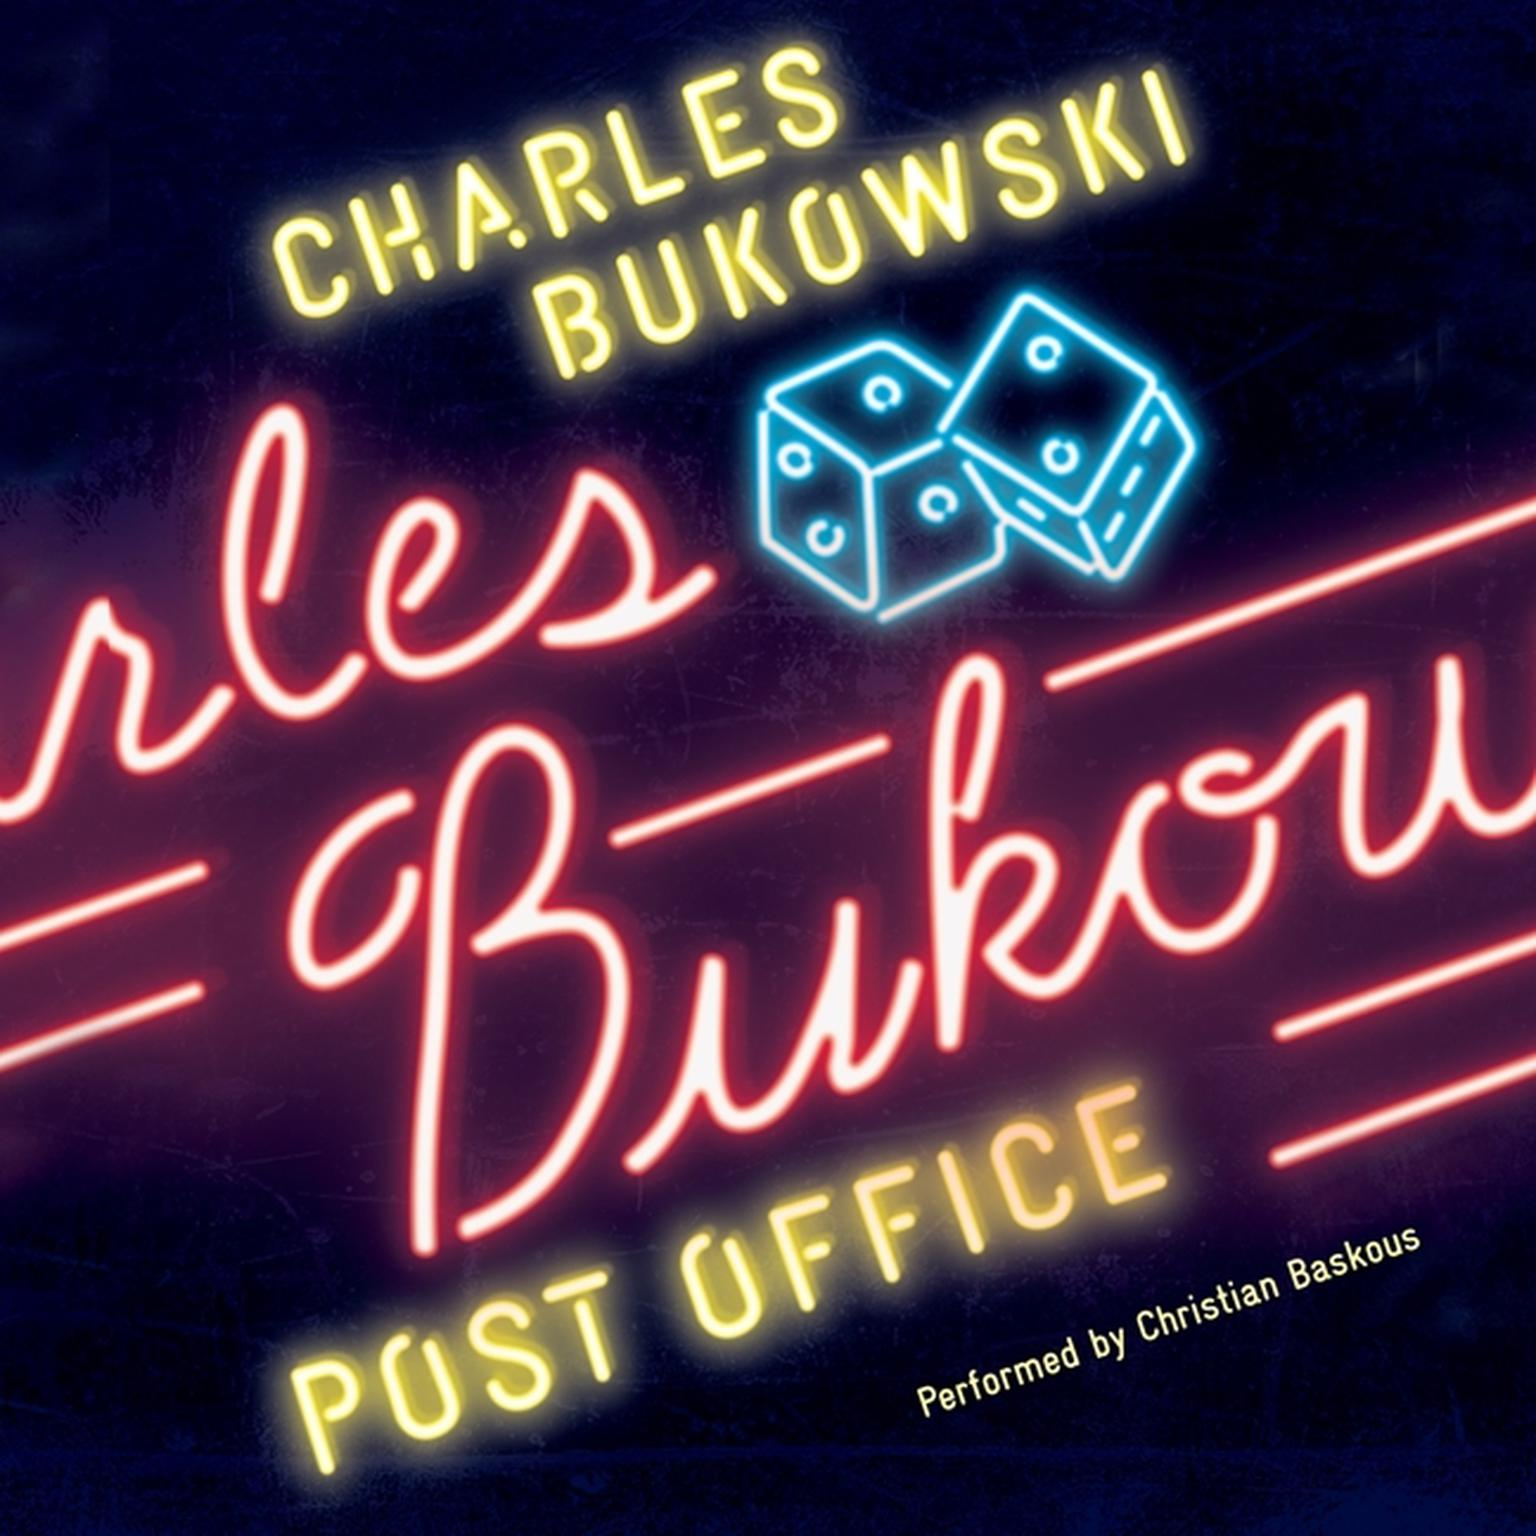 Download Post Office Audiobook By Charles Bukowski For